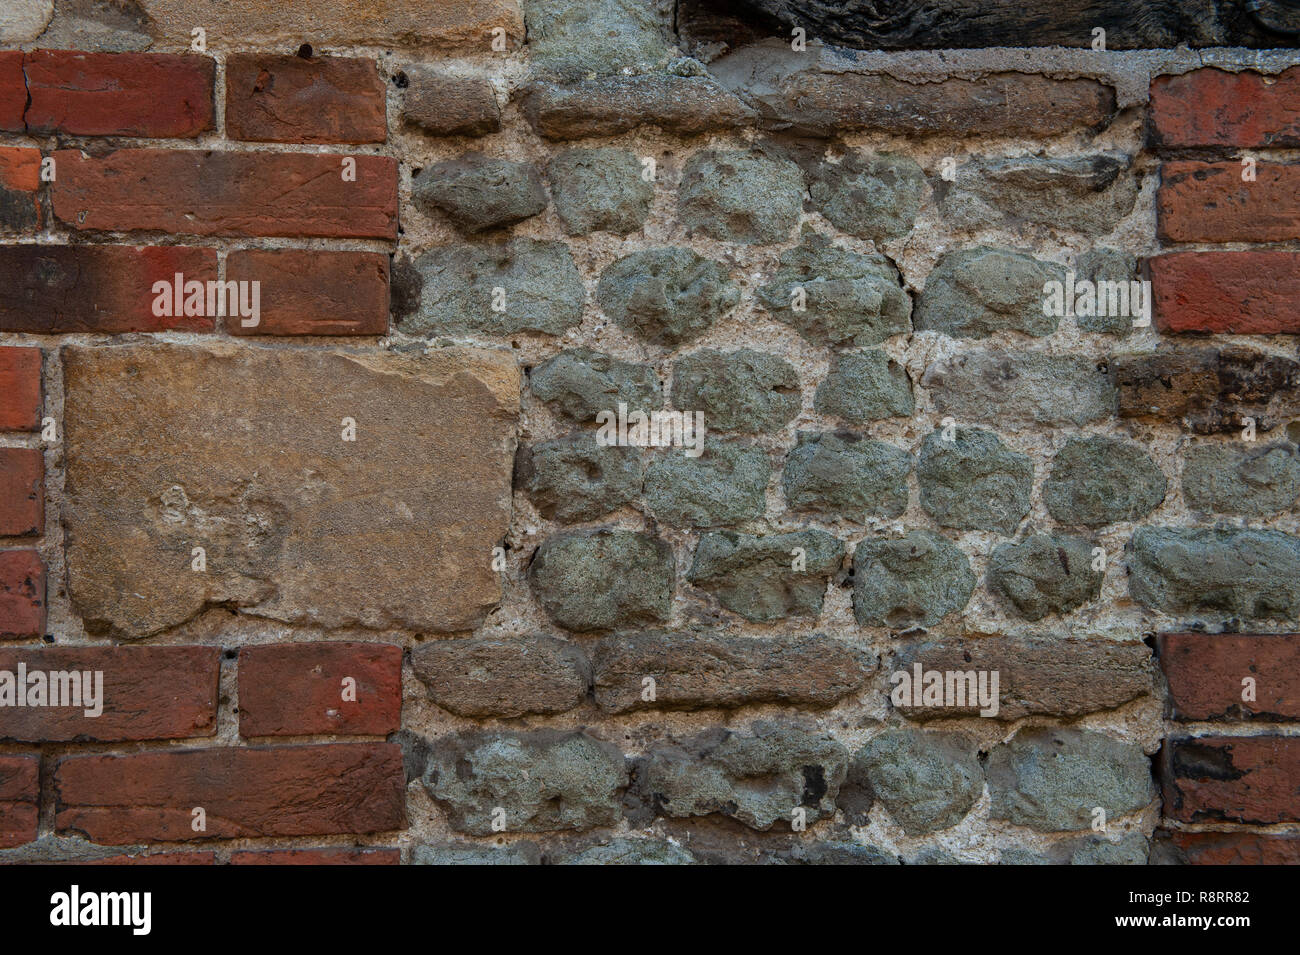 Wall built from mixed material - Stock Image